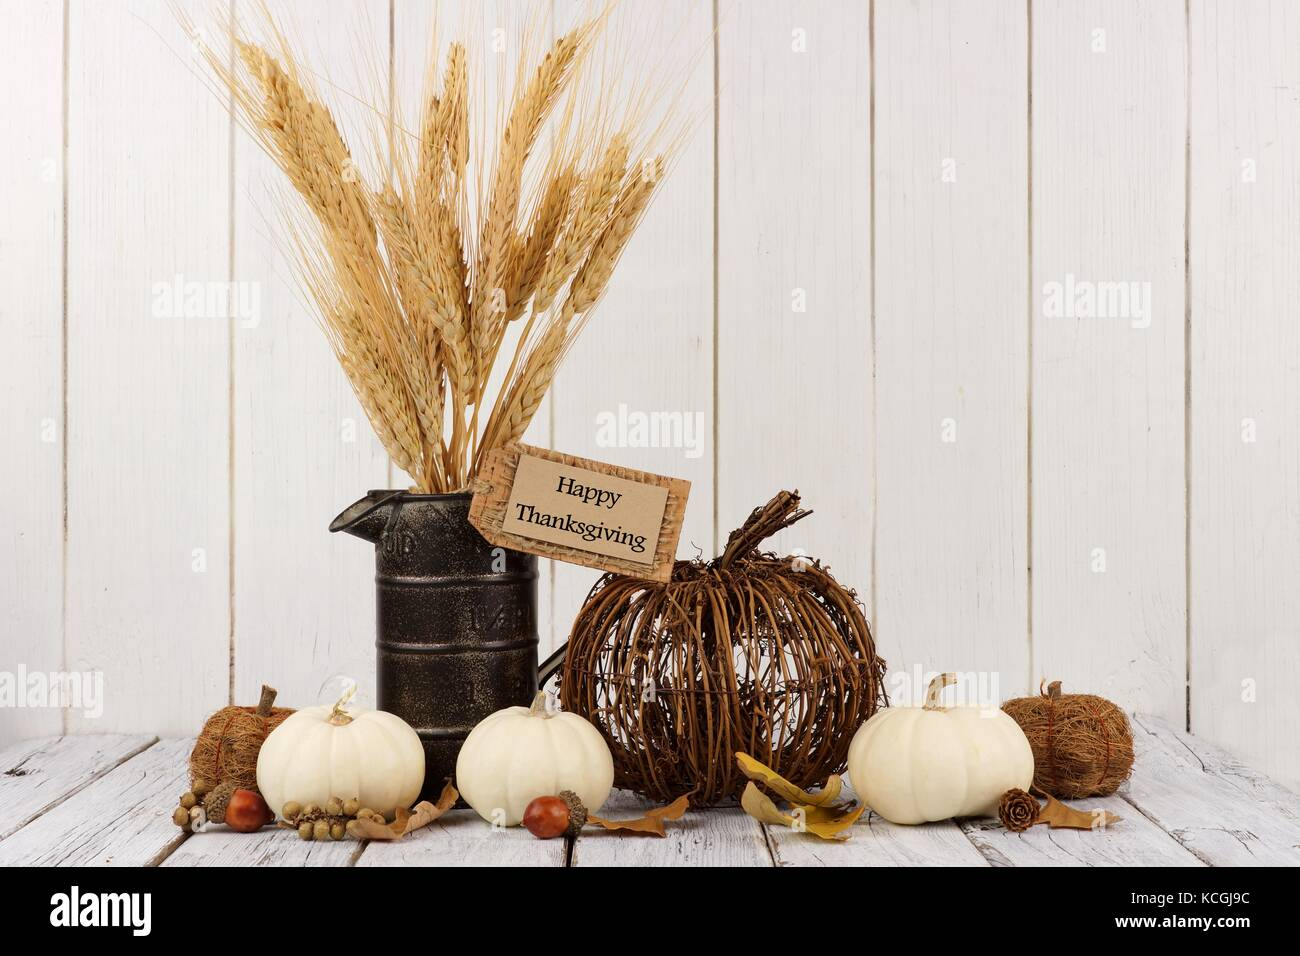 Fall Harvest Home Decor Stock Photos Fall Harvest Home Decor Stock